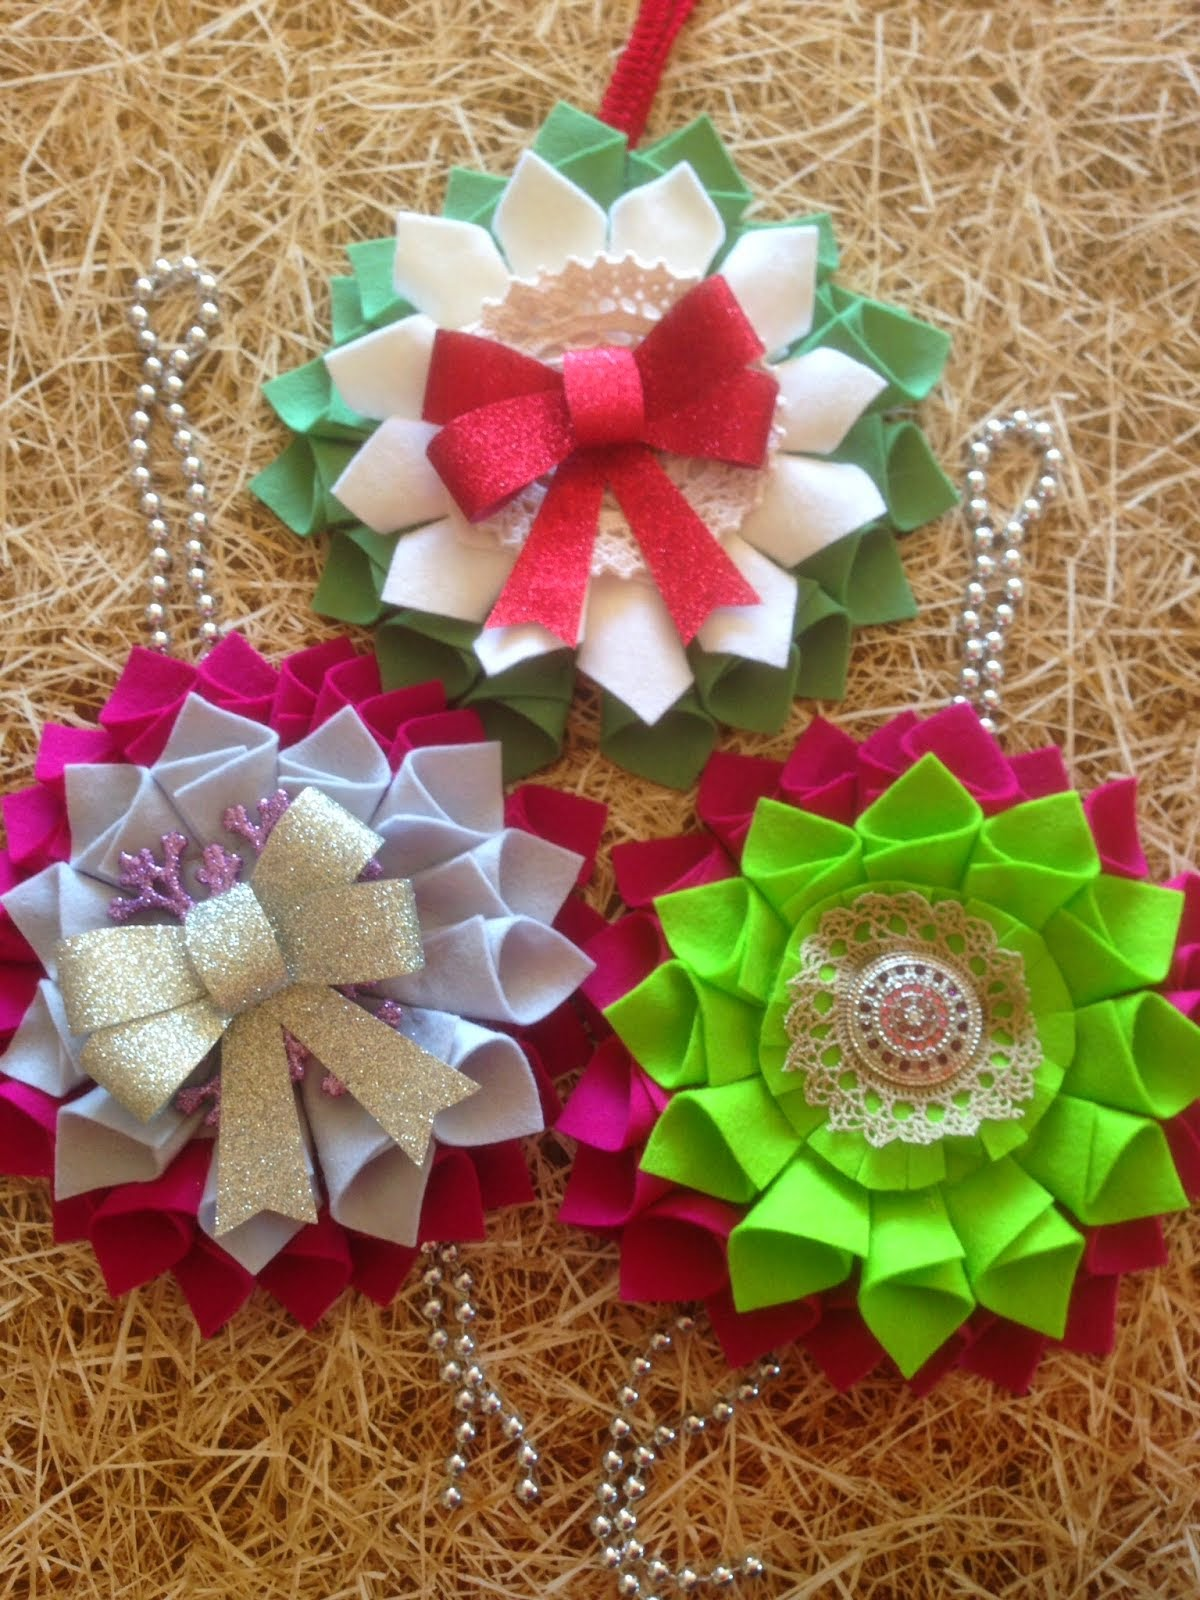 Christmas felt wreath